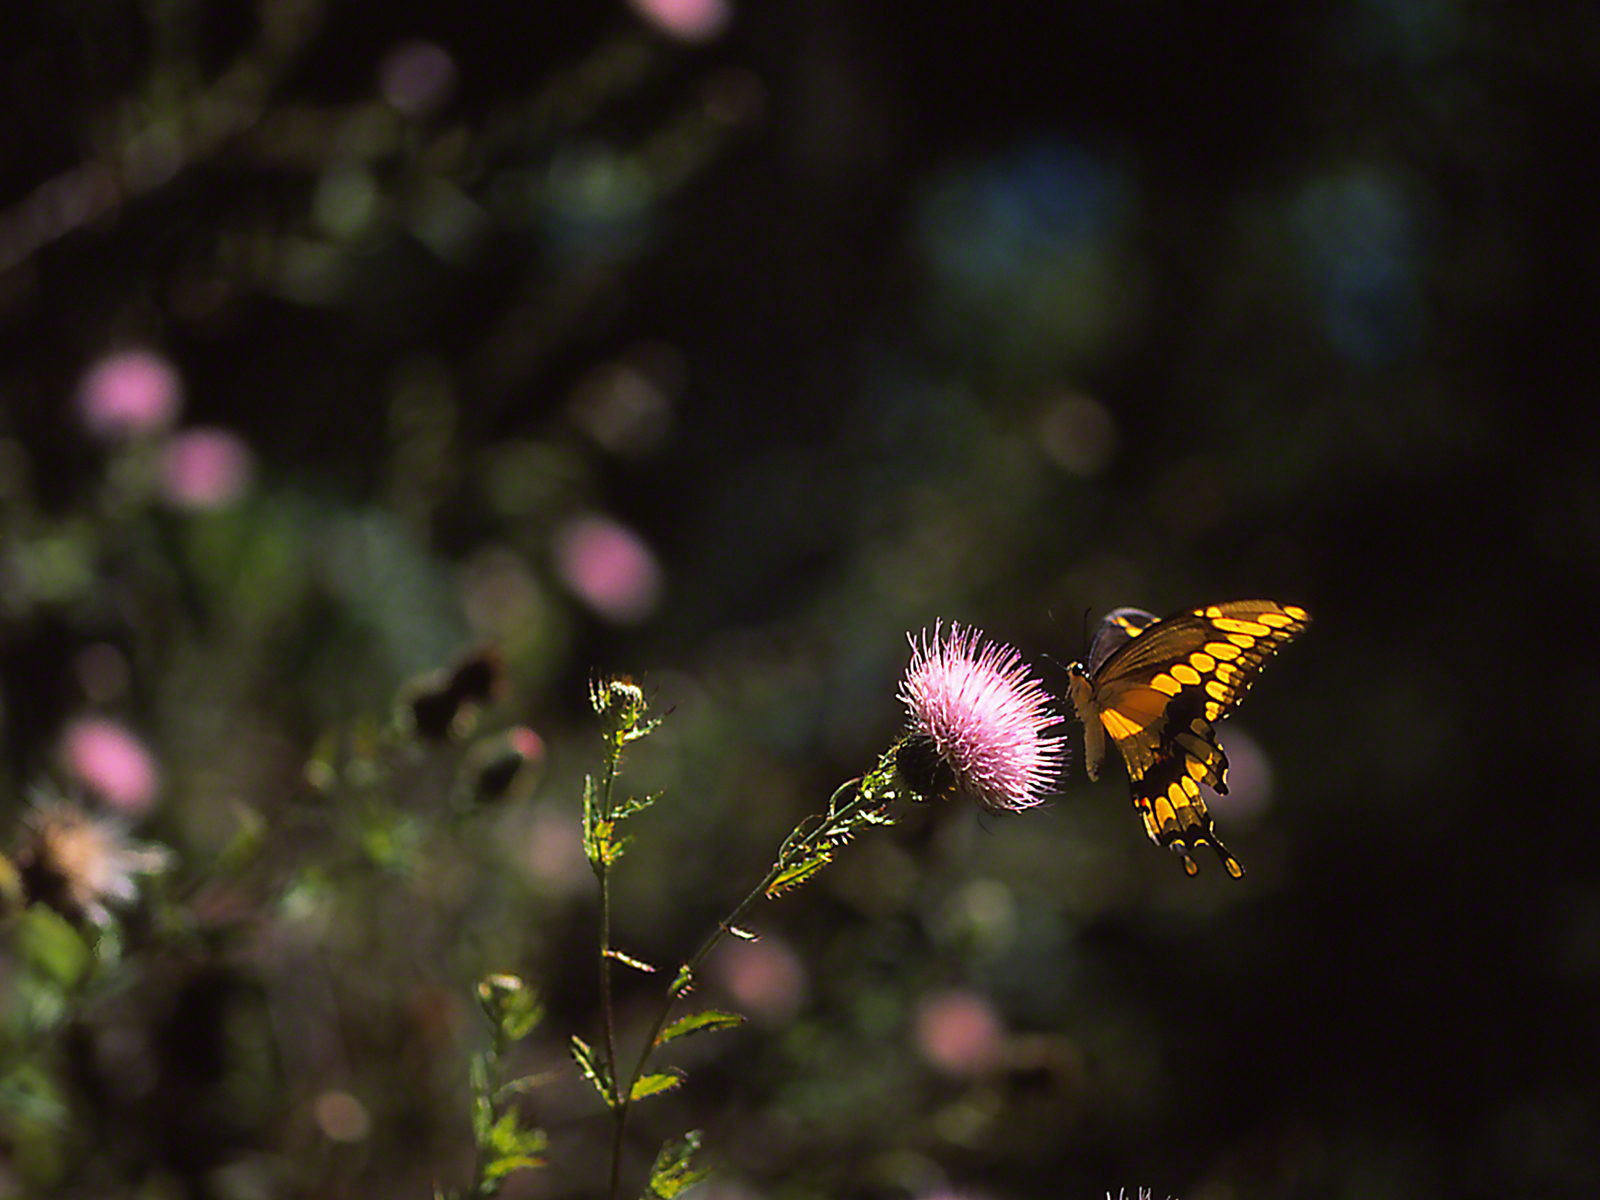 Giant swallowtail butterfly sipping nectar from thistle, photographed by Jeff Zablow at Wildlife Management Area, Kathleen, GA